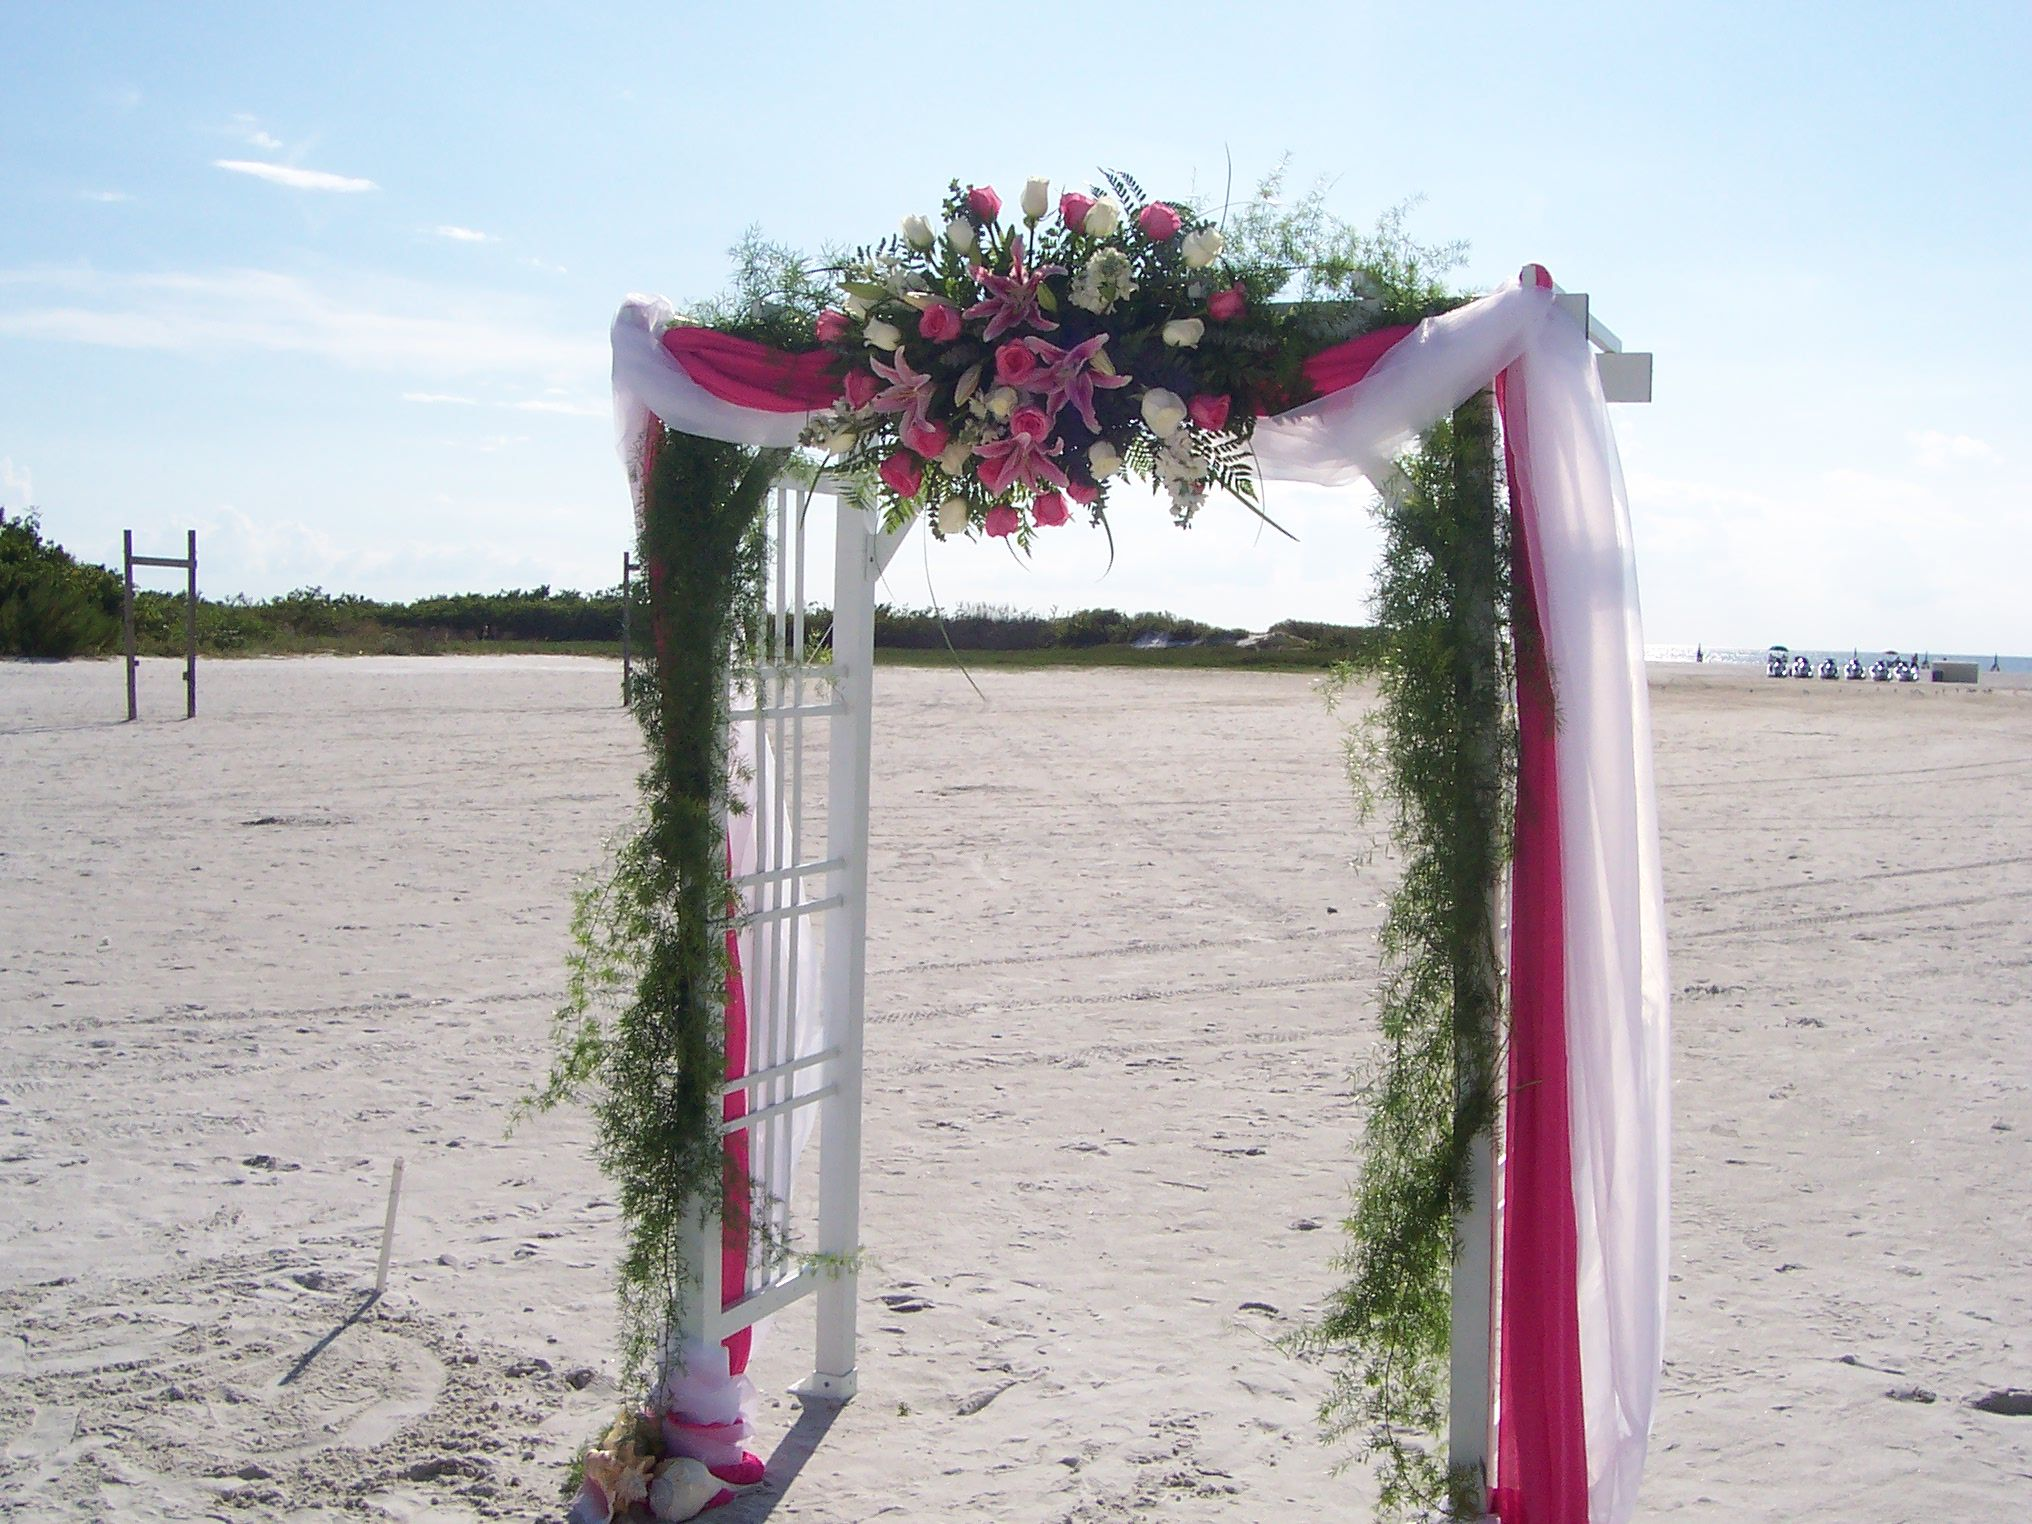 Alluring Outdoor Wedding Arches In A Beach With Silk Tulle And Garland  Adorn / Seasonal Beautiful Pictures Of Decorated Wedding Arches